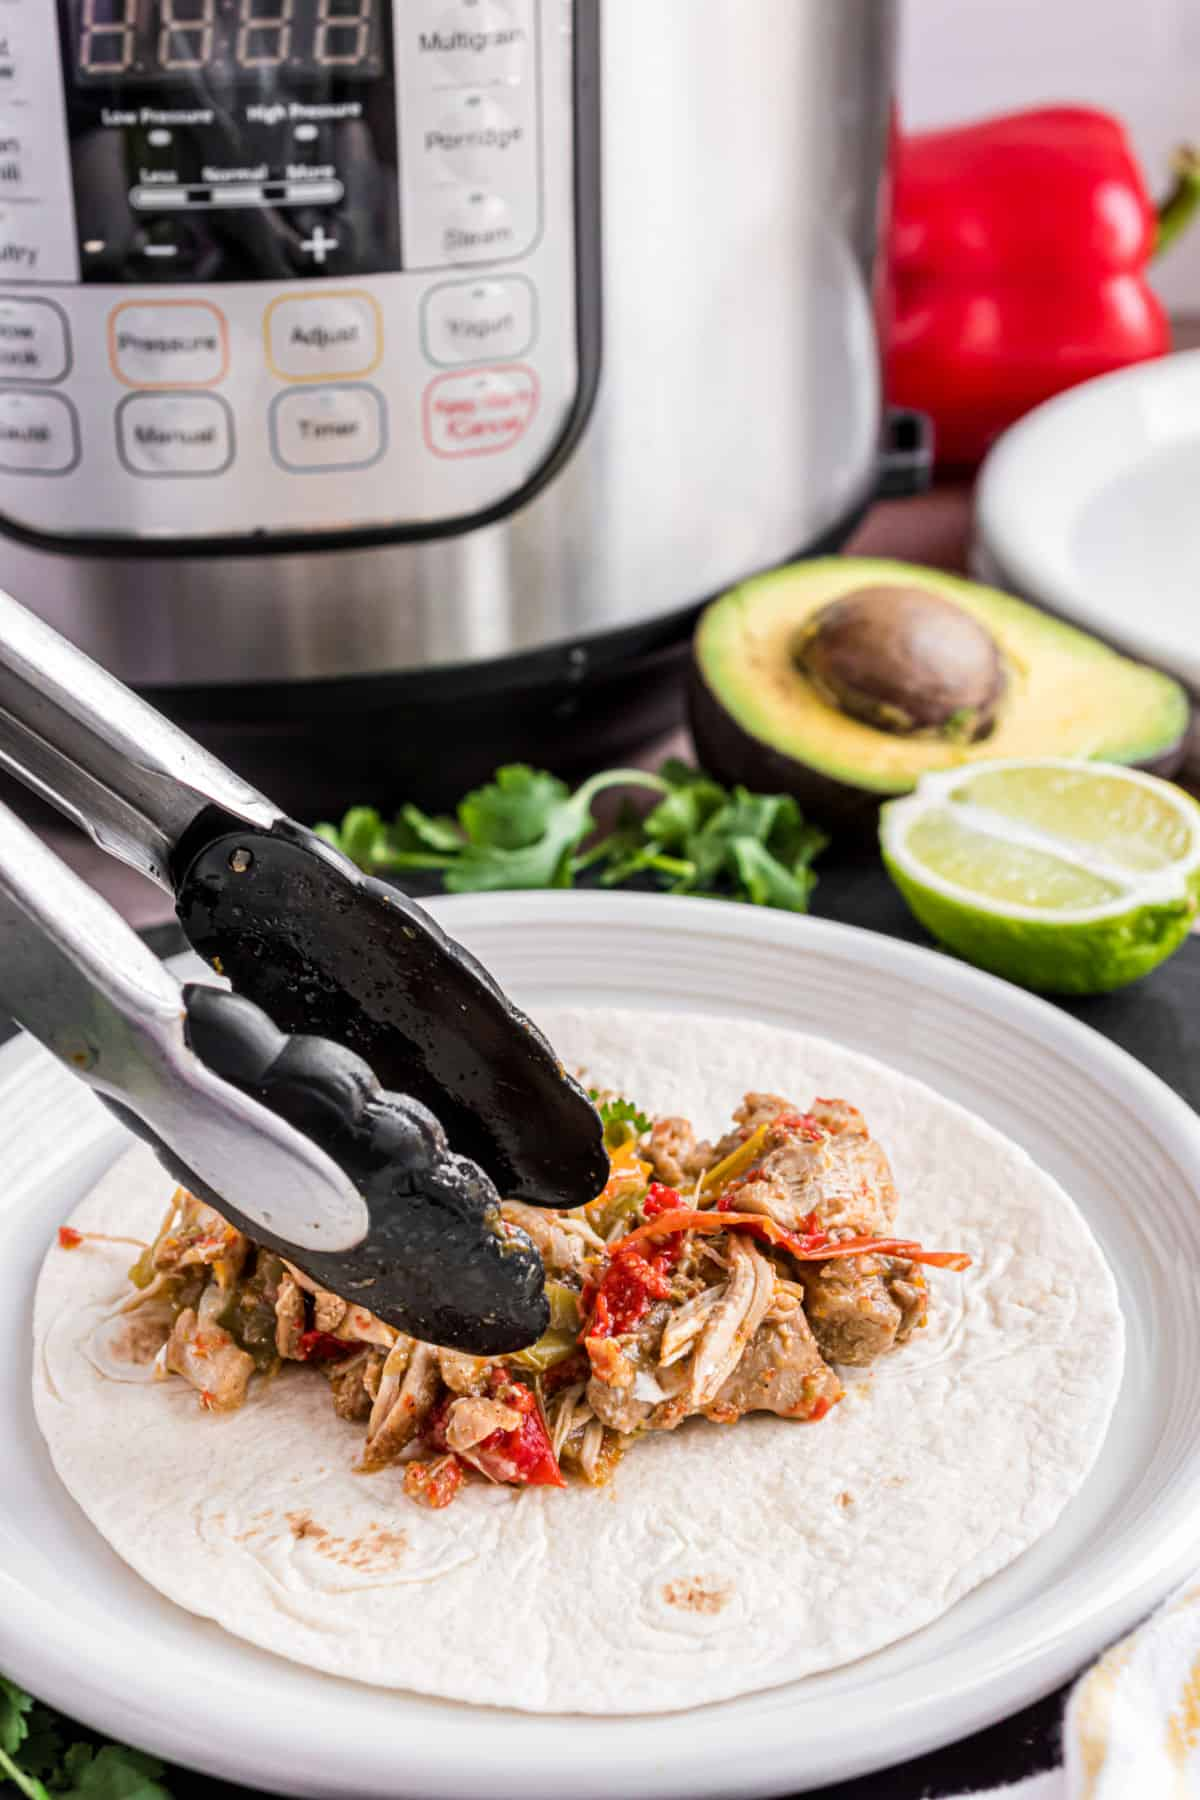 Chicken fajitas made in the Instant Pot being put on a flour tortilla with tongs.